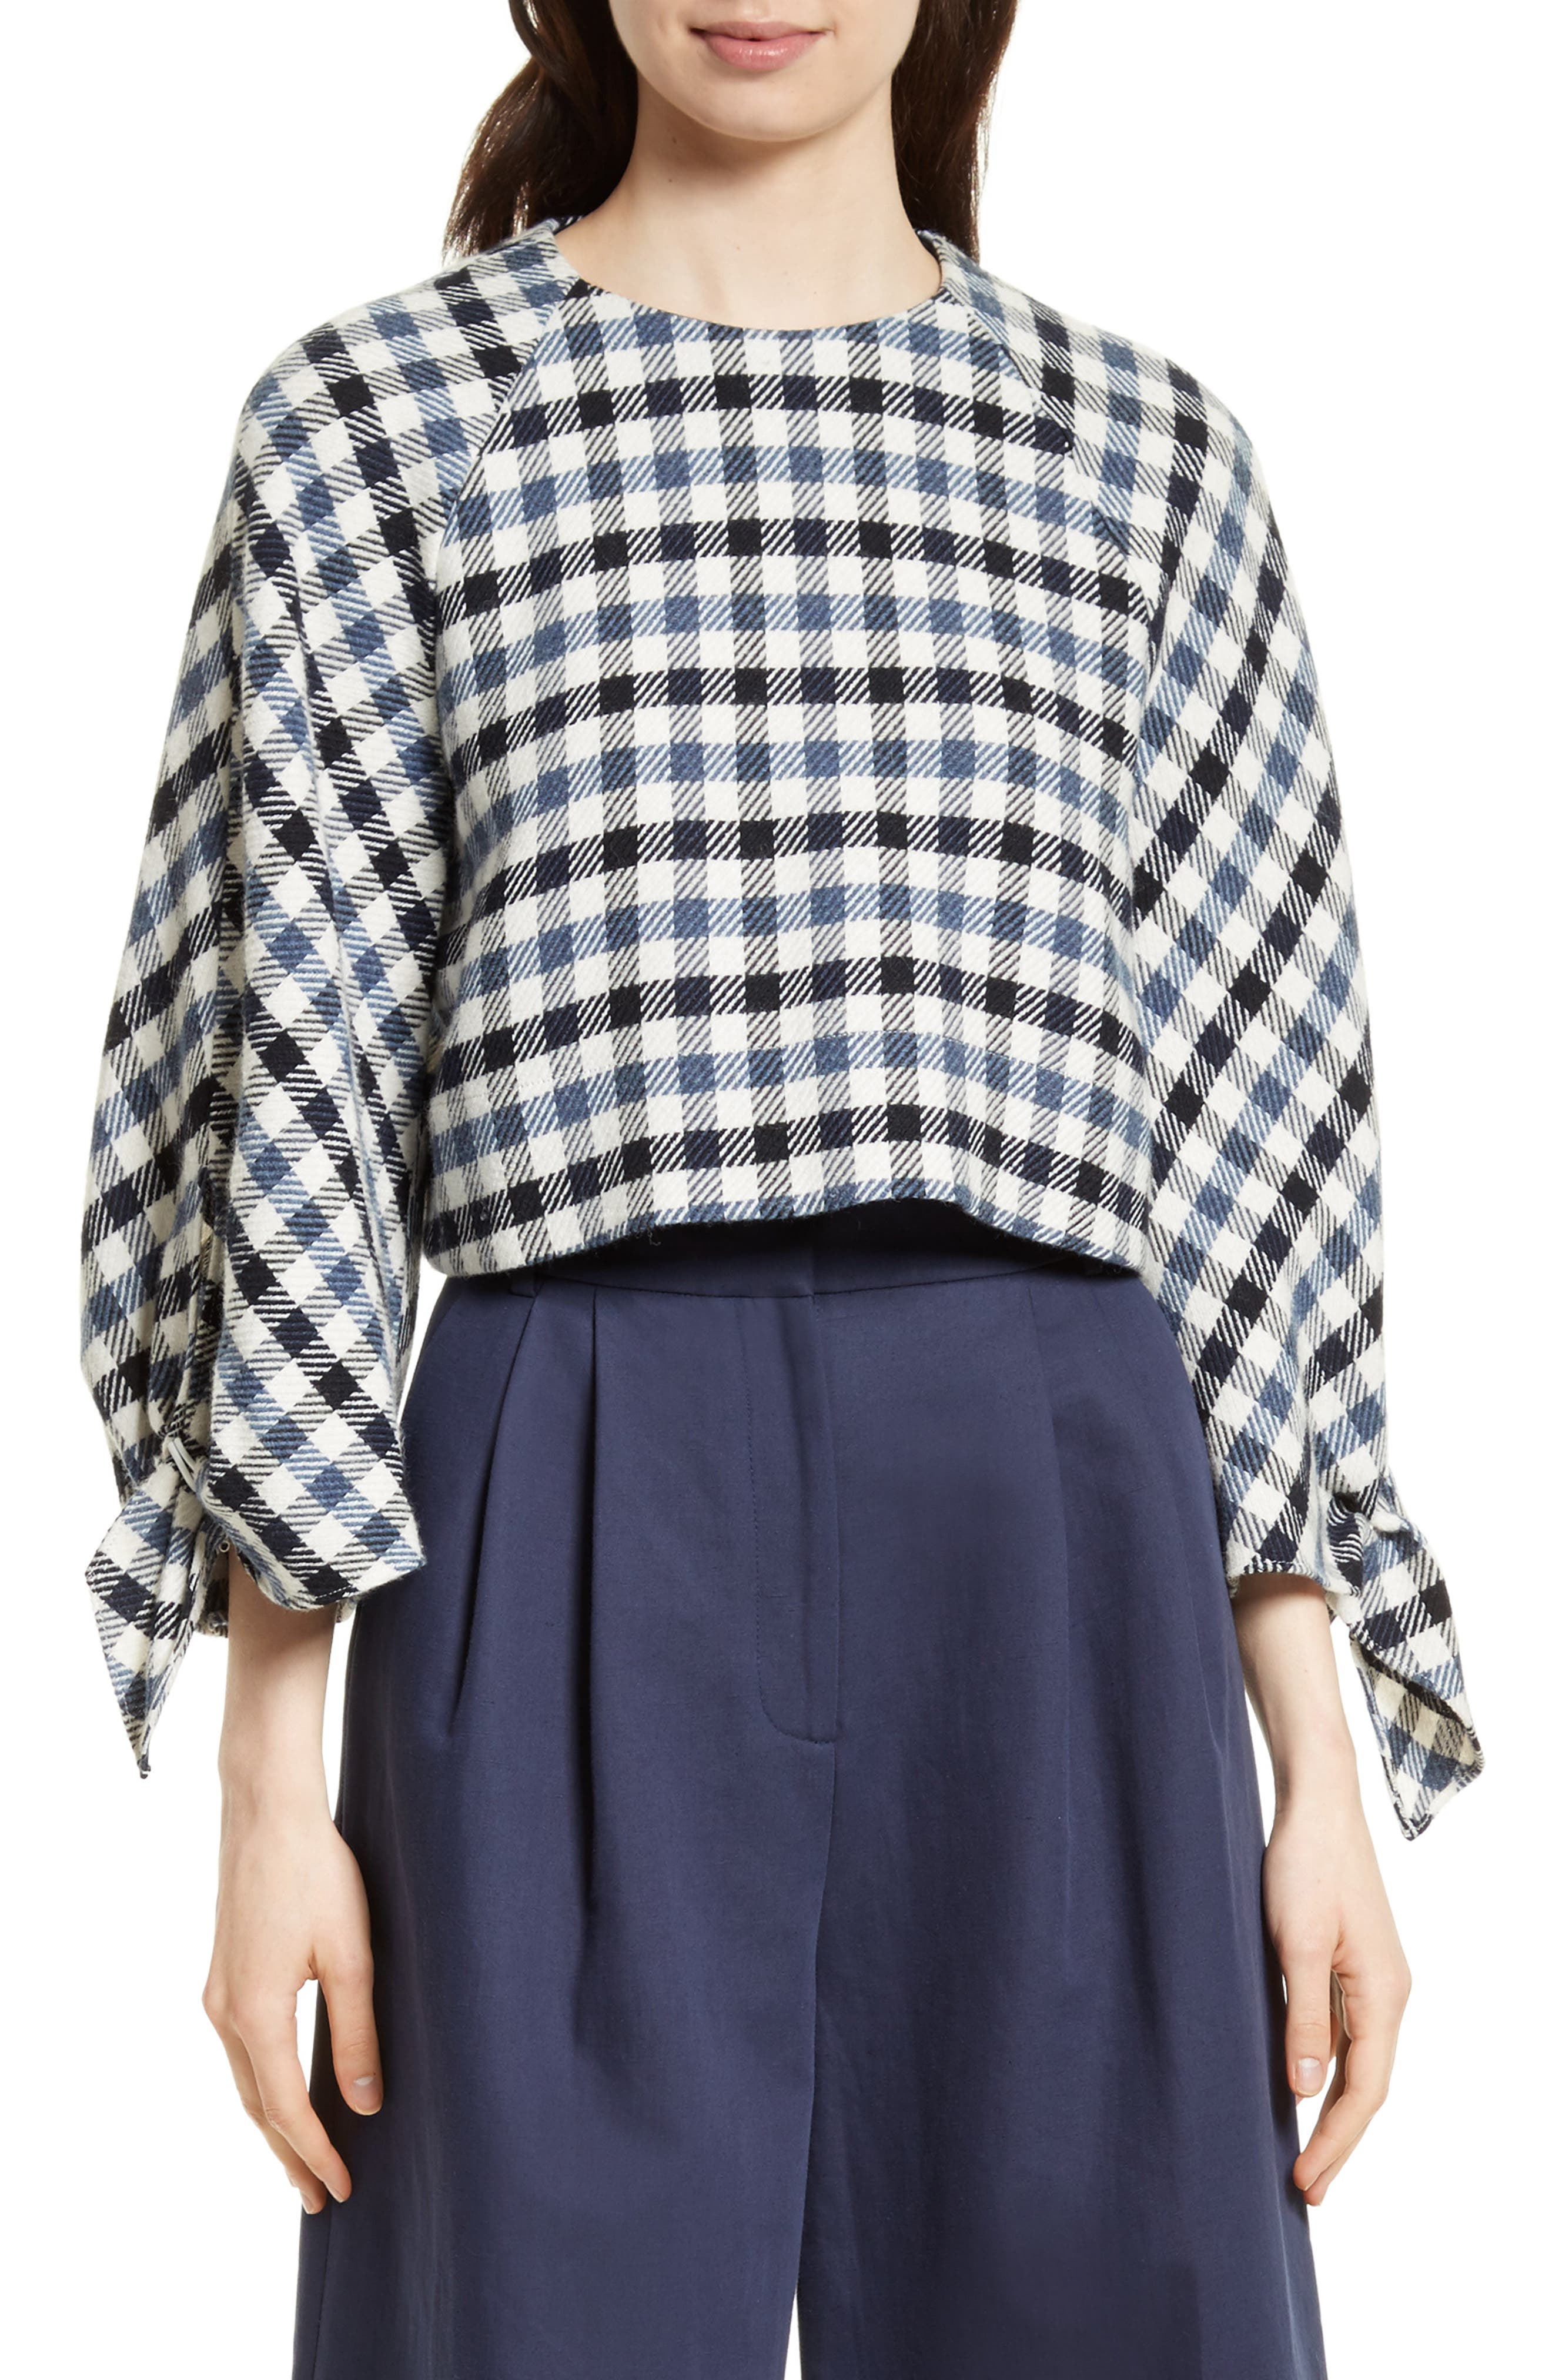 Tibi Fairfax Gingham Tie Sleeve Crop Top